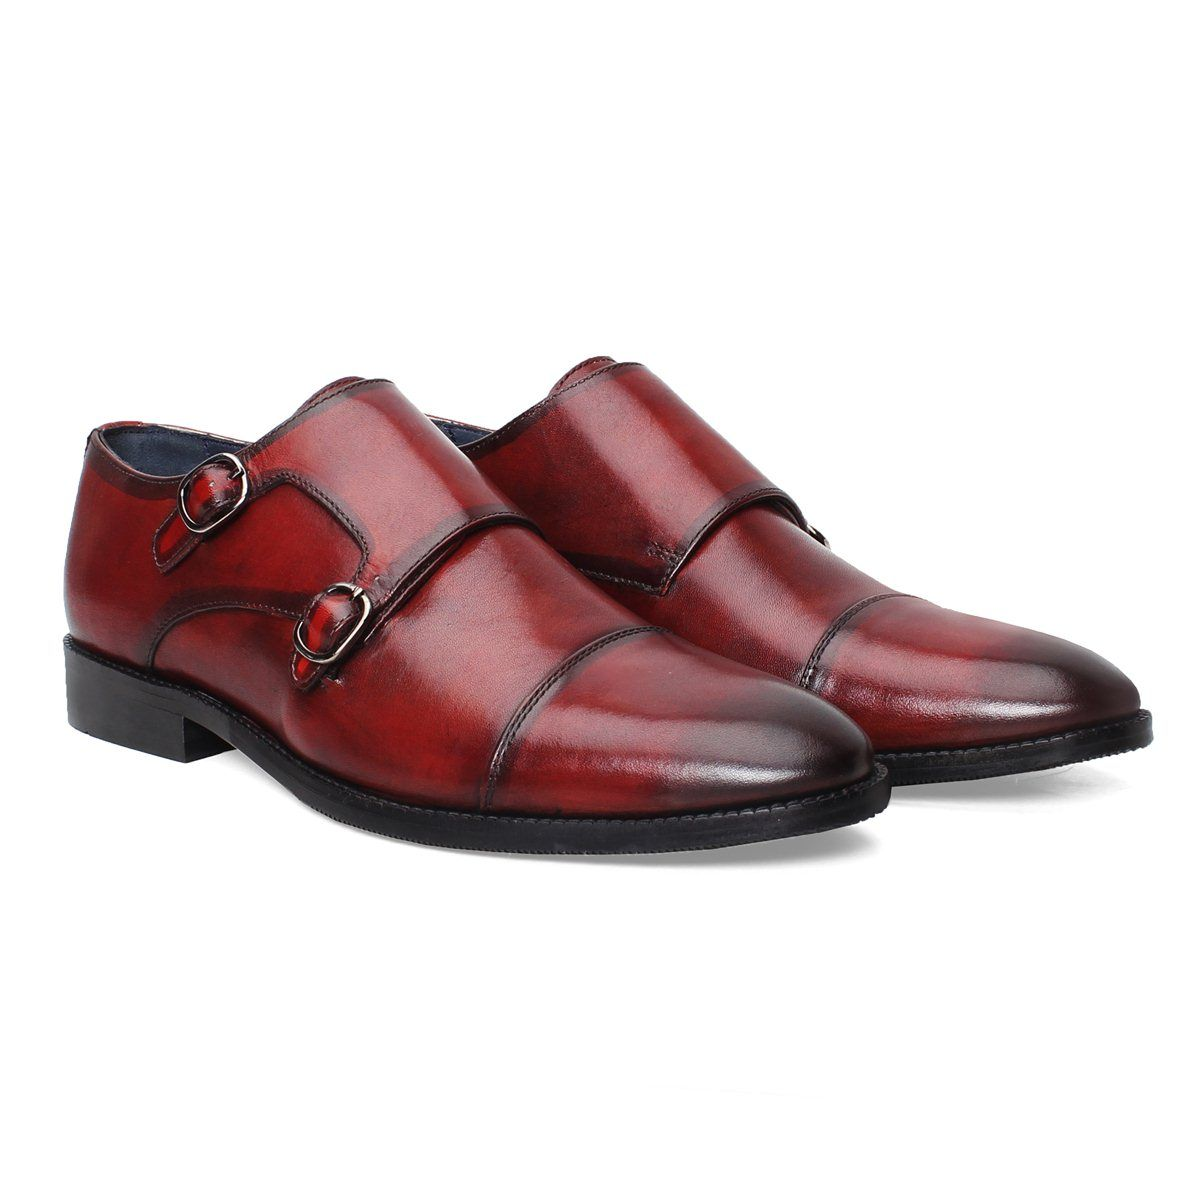 7859dfbc87b73 Buy #Burgundy Hand Finished #Leather Double Monk Strap #Formalshoes at  Rs.4,999/- @ #Voganow.com